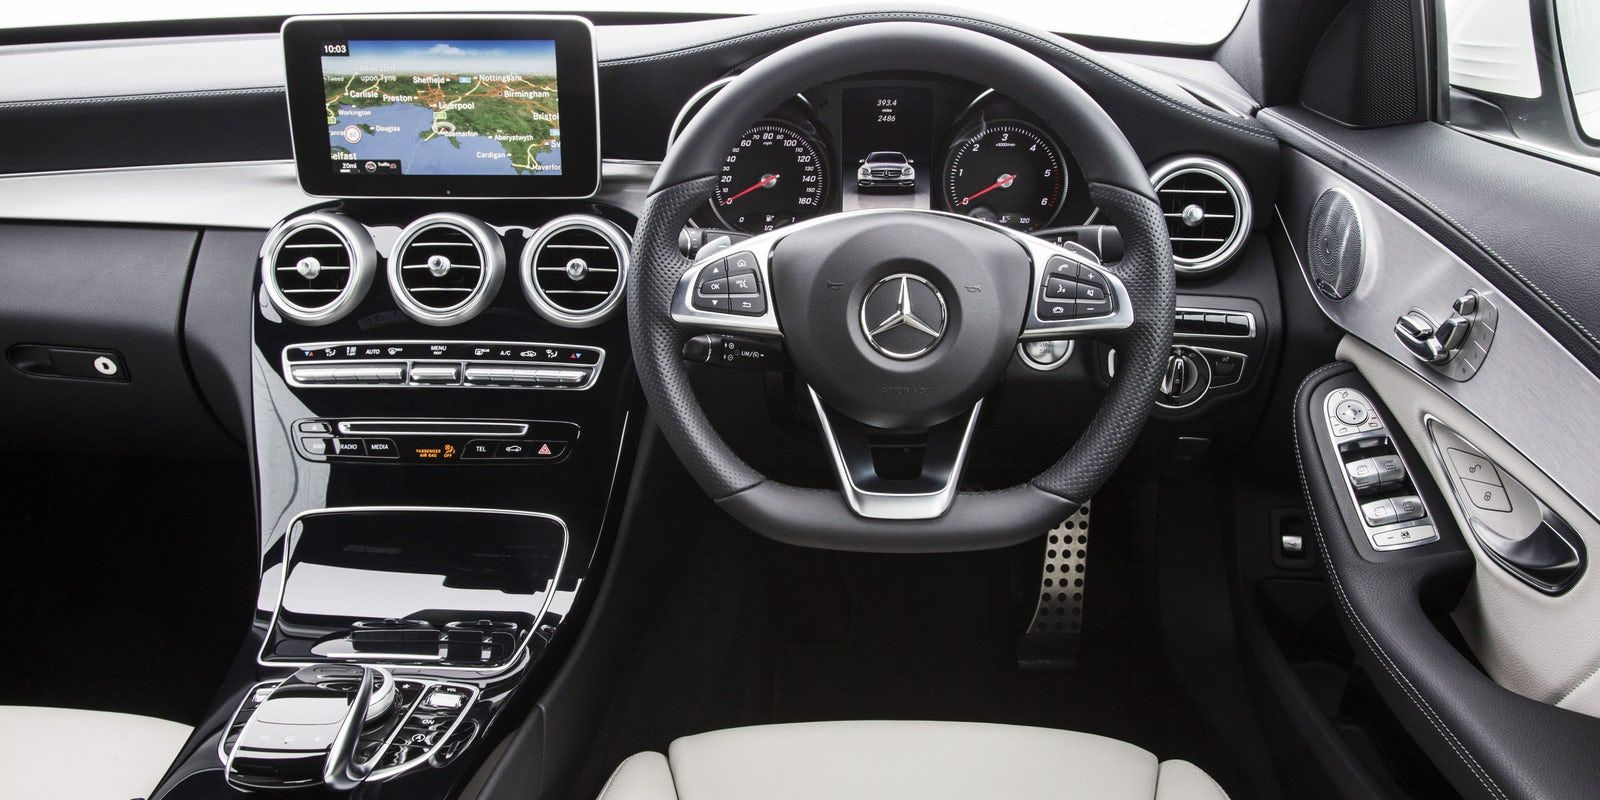 mercedes c class w205 interior first car maybe pinterest cars. Black Bedroom Furniture Sets. Home Design Ideas